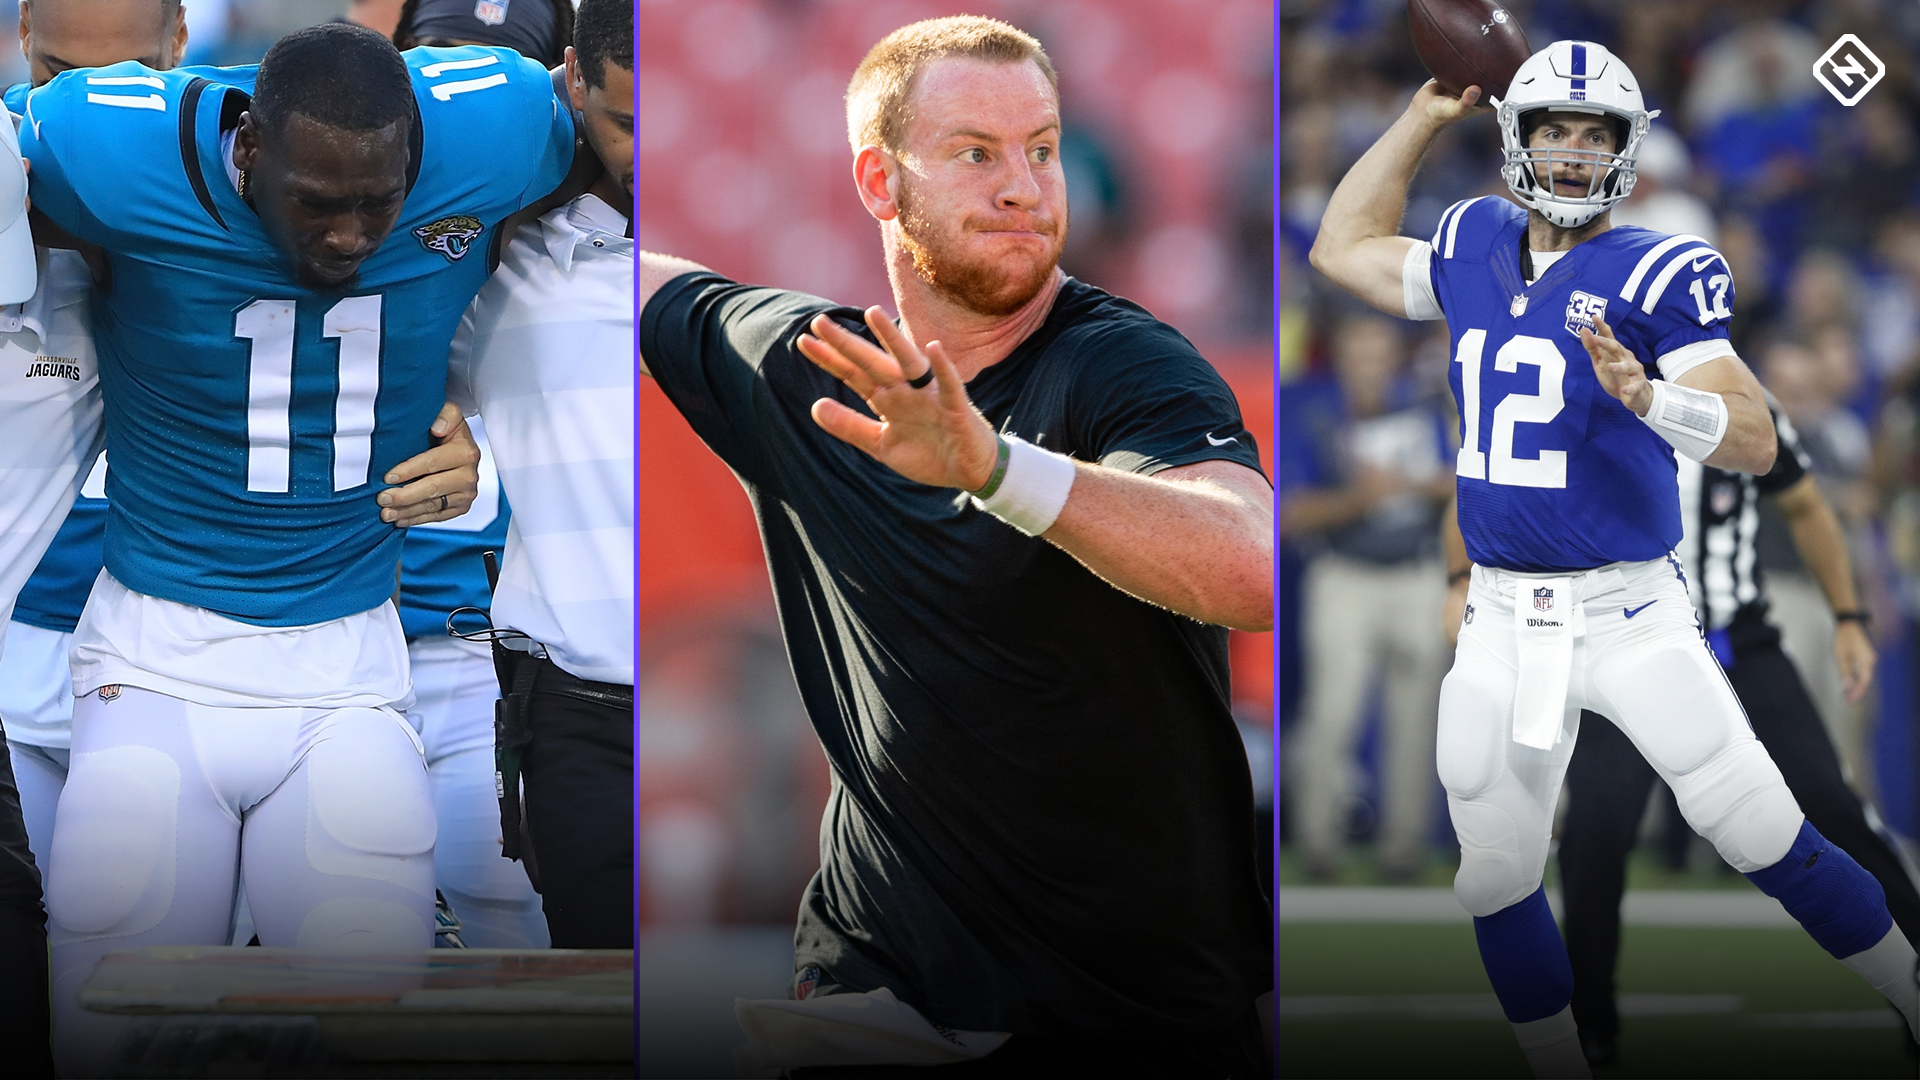 Fantasy Football Updates: Marqise Lee, Carson Wentz, Andrew Luck, more affecting fantasy rankings